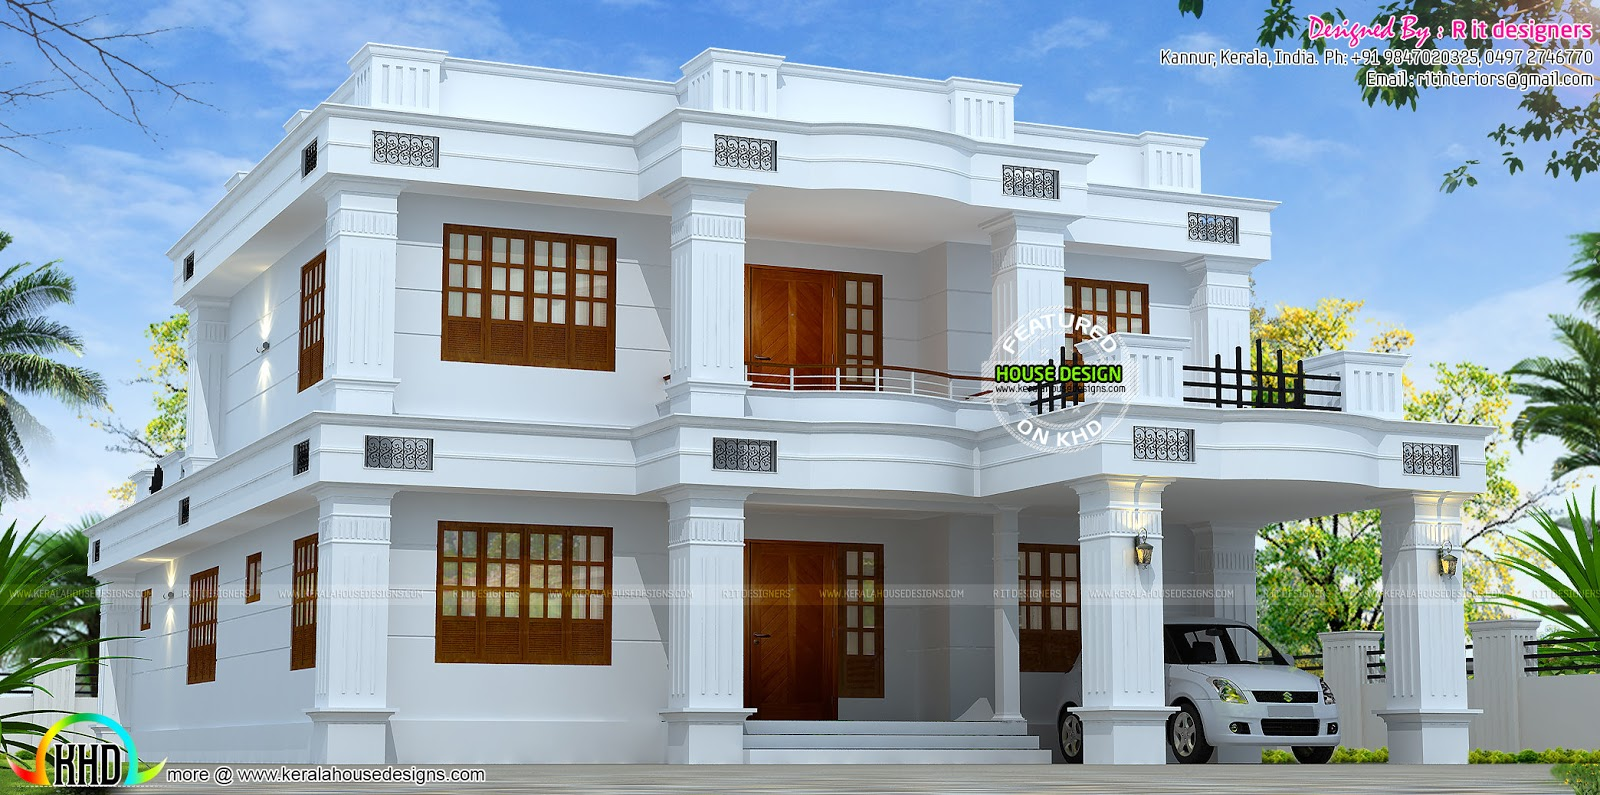 February 2016 kerala home design and floor plans for Home design 4u kerala